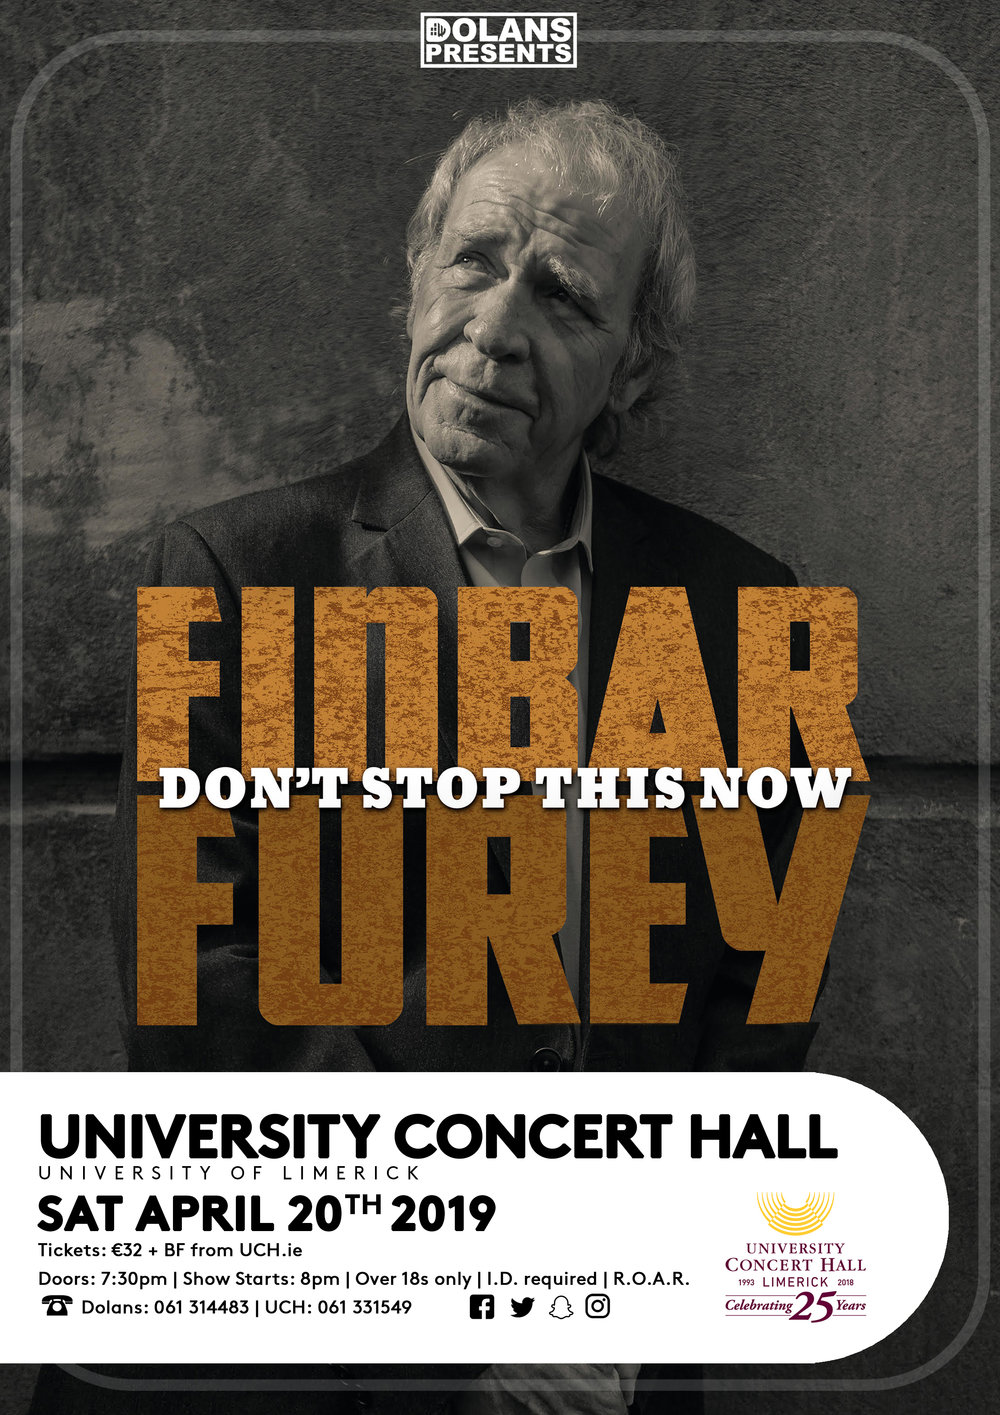 Tickets €32 from University Concert Hall